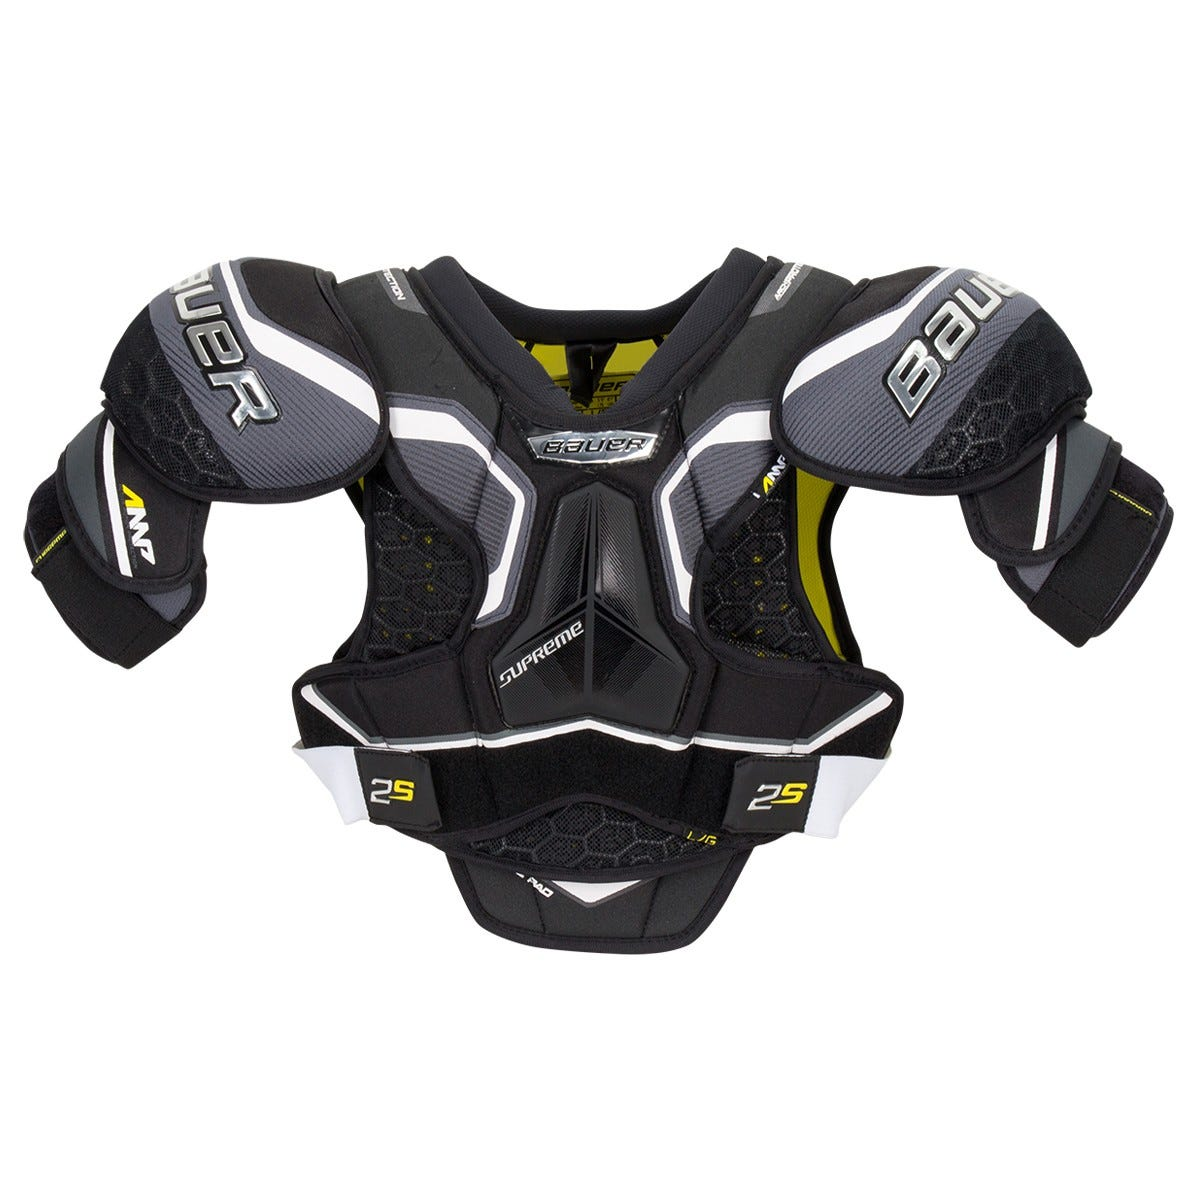 Bauer Supreme 2S Junior Hockey Shoulder Pads